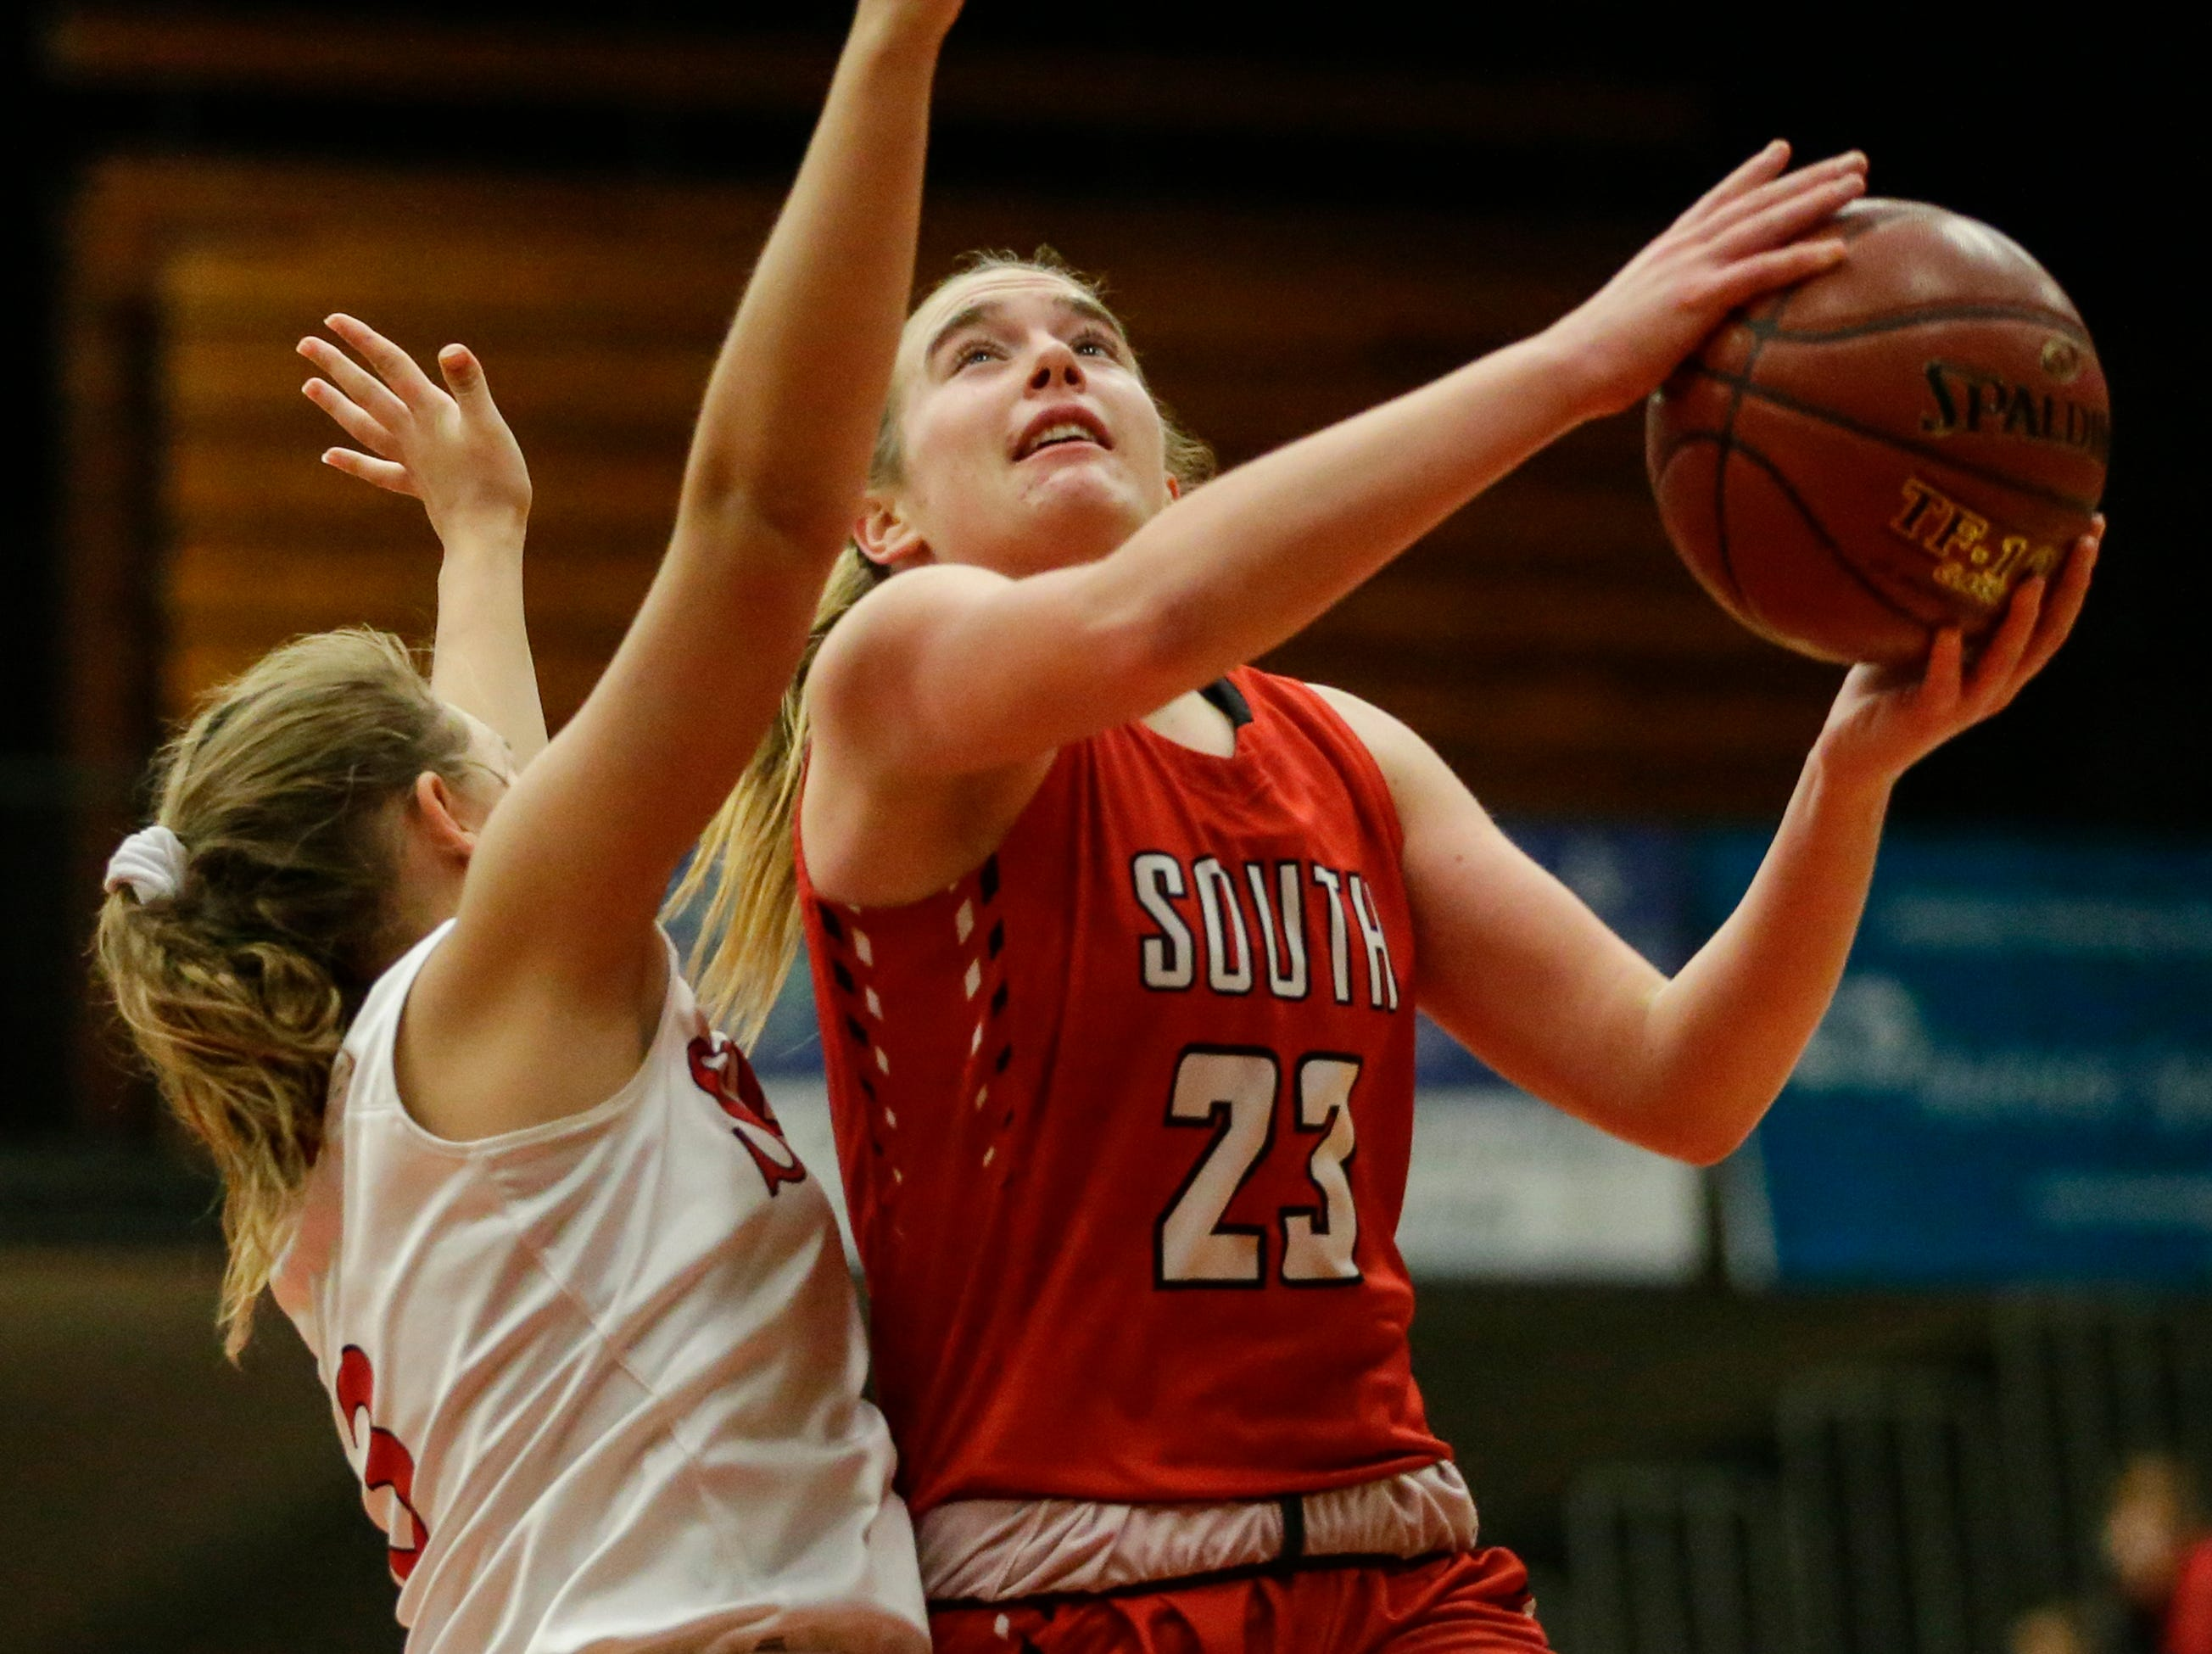 Sheboygan South's Halle Boldt drives to the hoop against Manitowoc Lincoln during an FRCC matchup at Manitowoc Lincoln High School Friday, January 4, 2019, in Manitowoc, Wis. Joshua Clark/USA TODAY NETWORK-Wisconsin